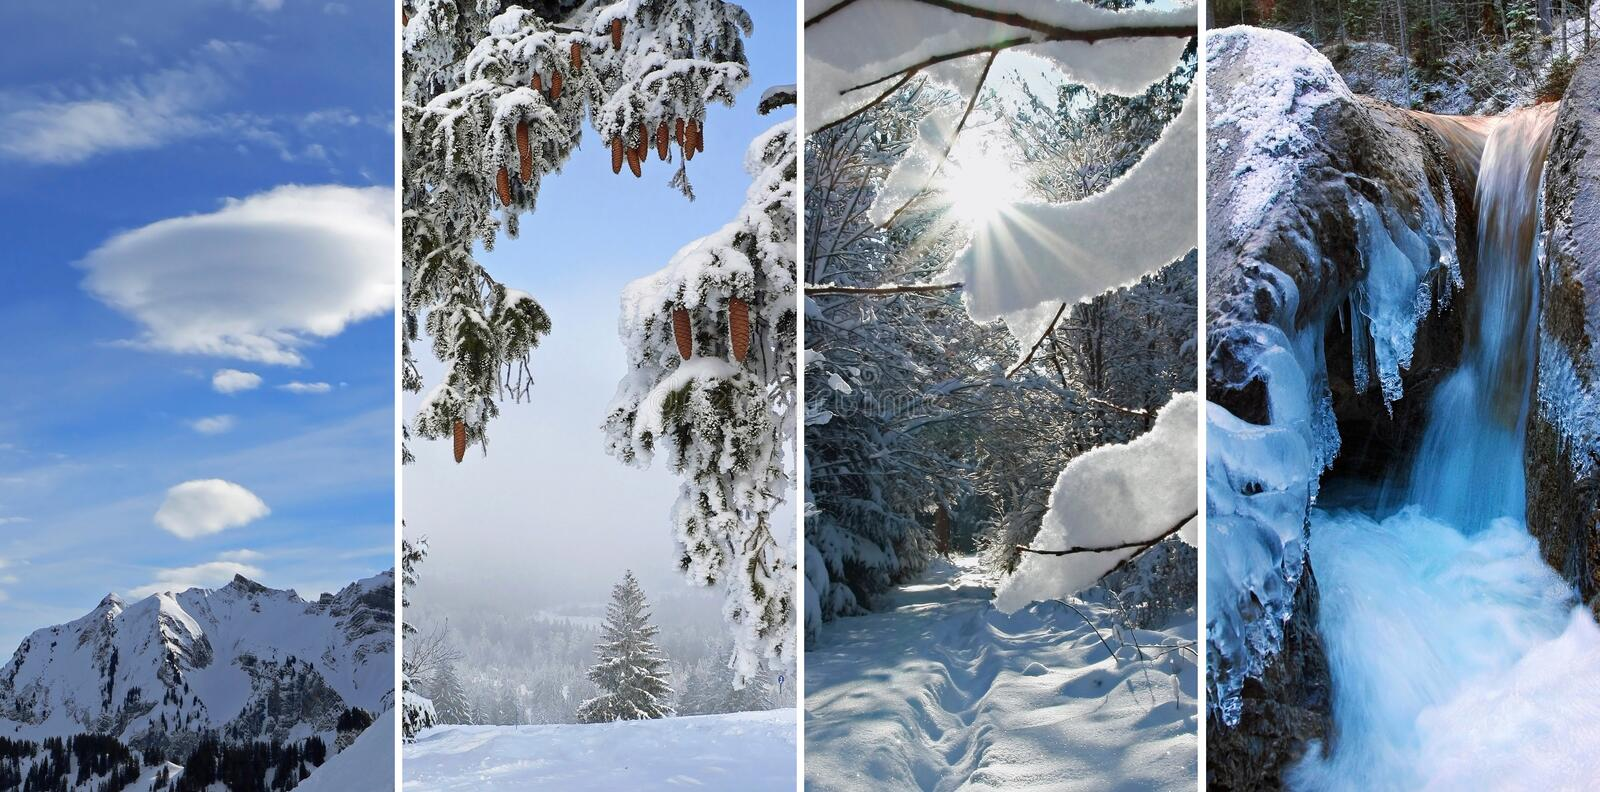 Collage - winter impressions. Collage of four images winter wonderland: 1. mountain peak and clouds, austria 2. winter landscape, austria 3. snowy path in the royalty free stock image